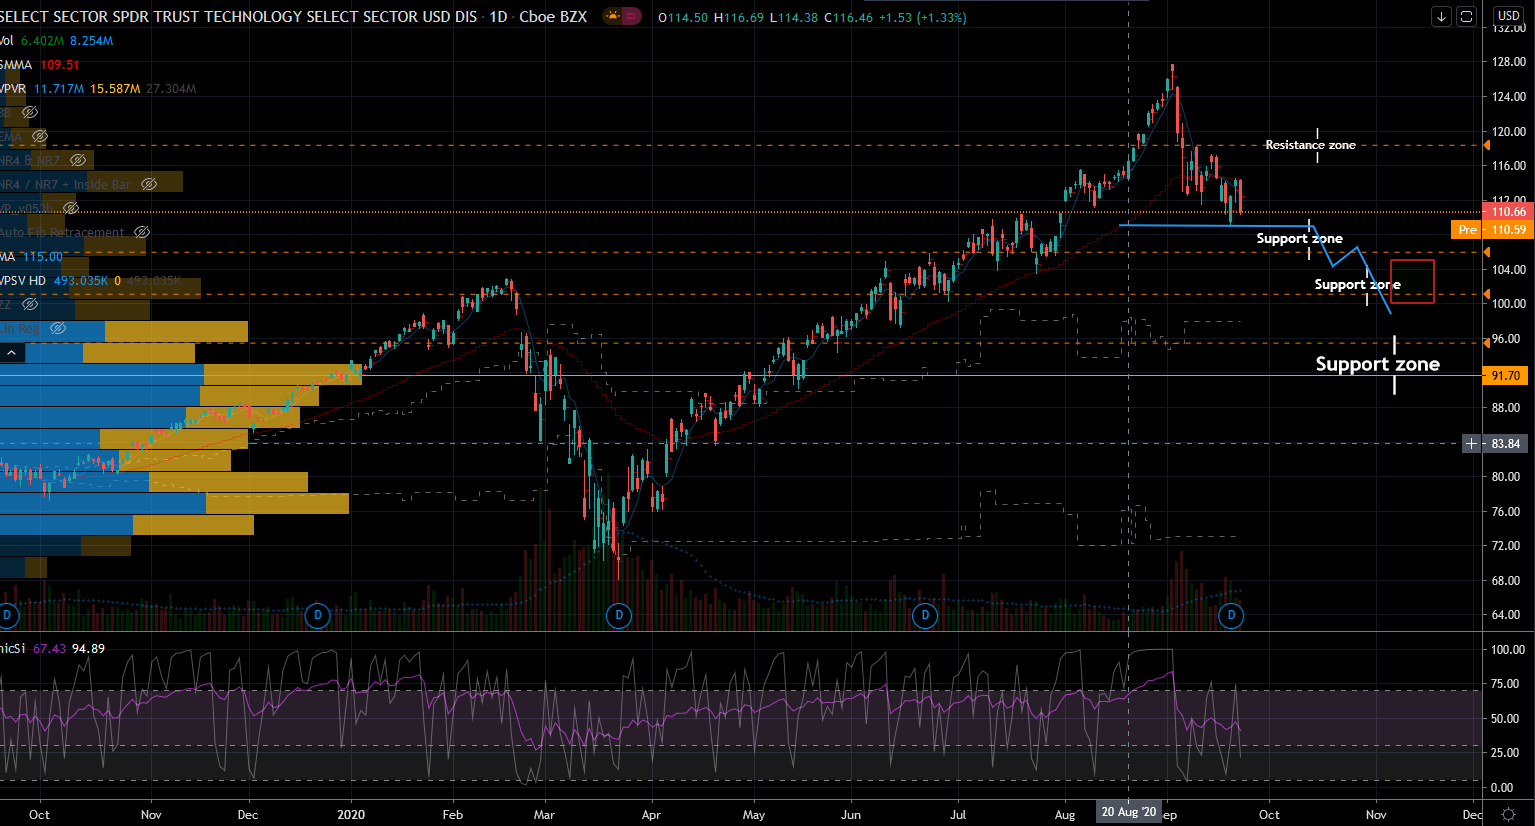 Oversold stocks: XLK Stock Chart Showing Support Zones